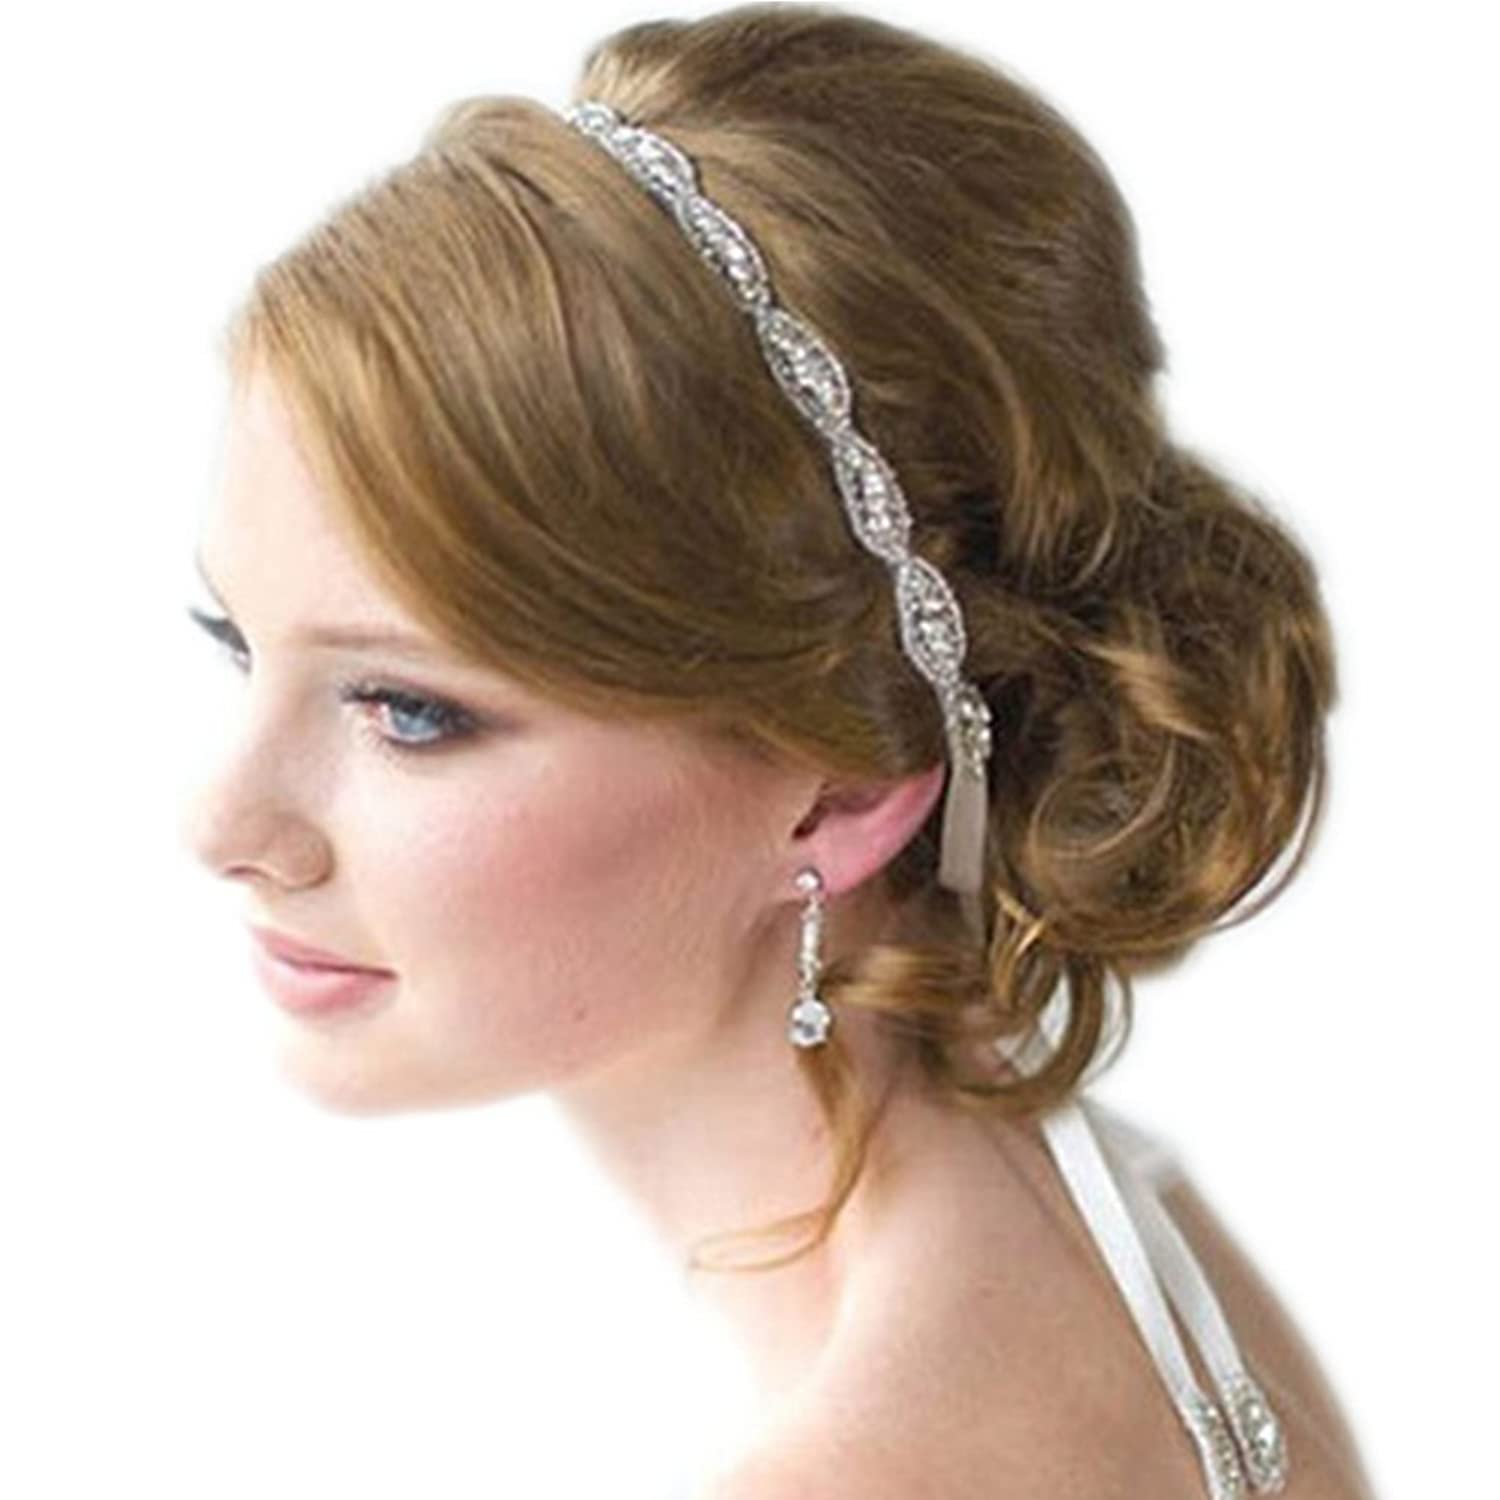 Samgo Vintage Women Accessories Single Band Round Bridal Hair Band